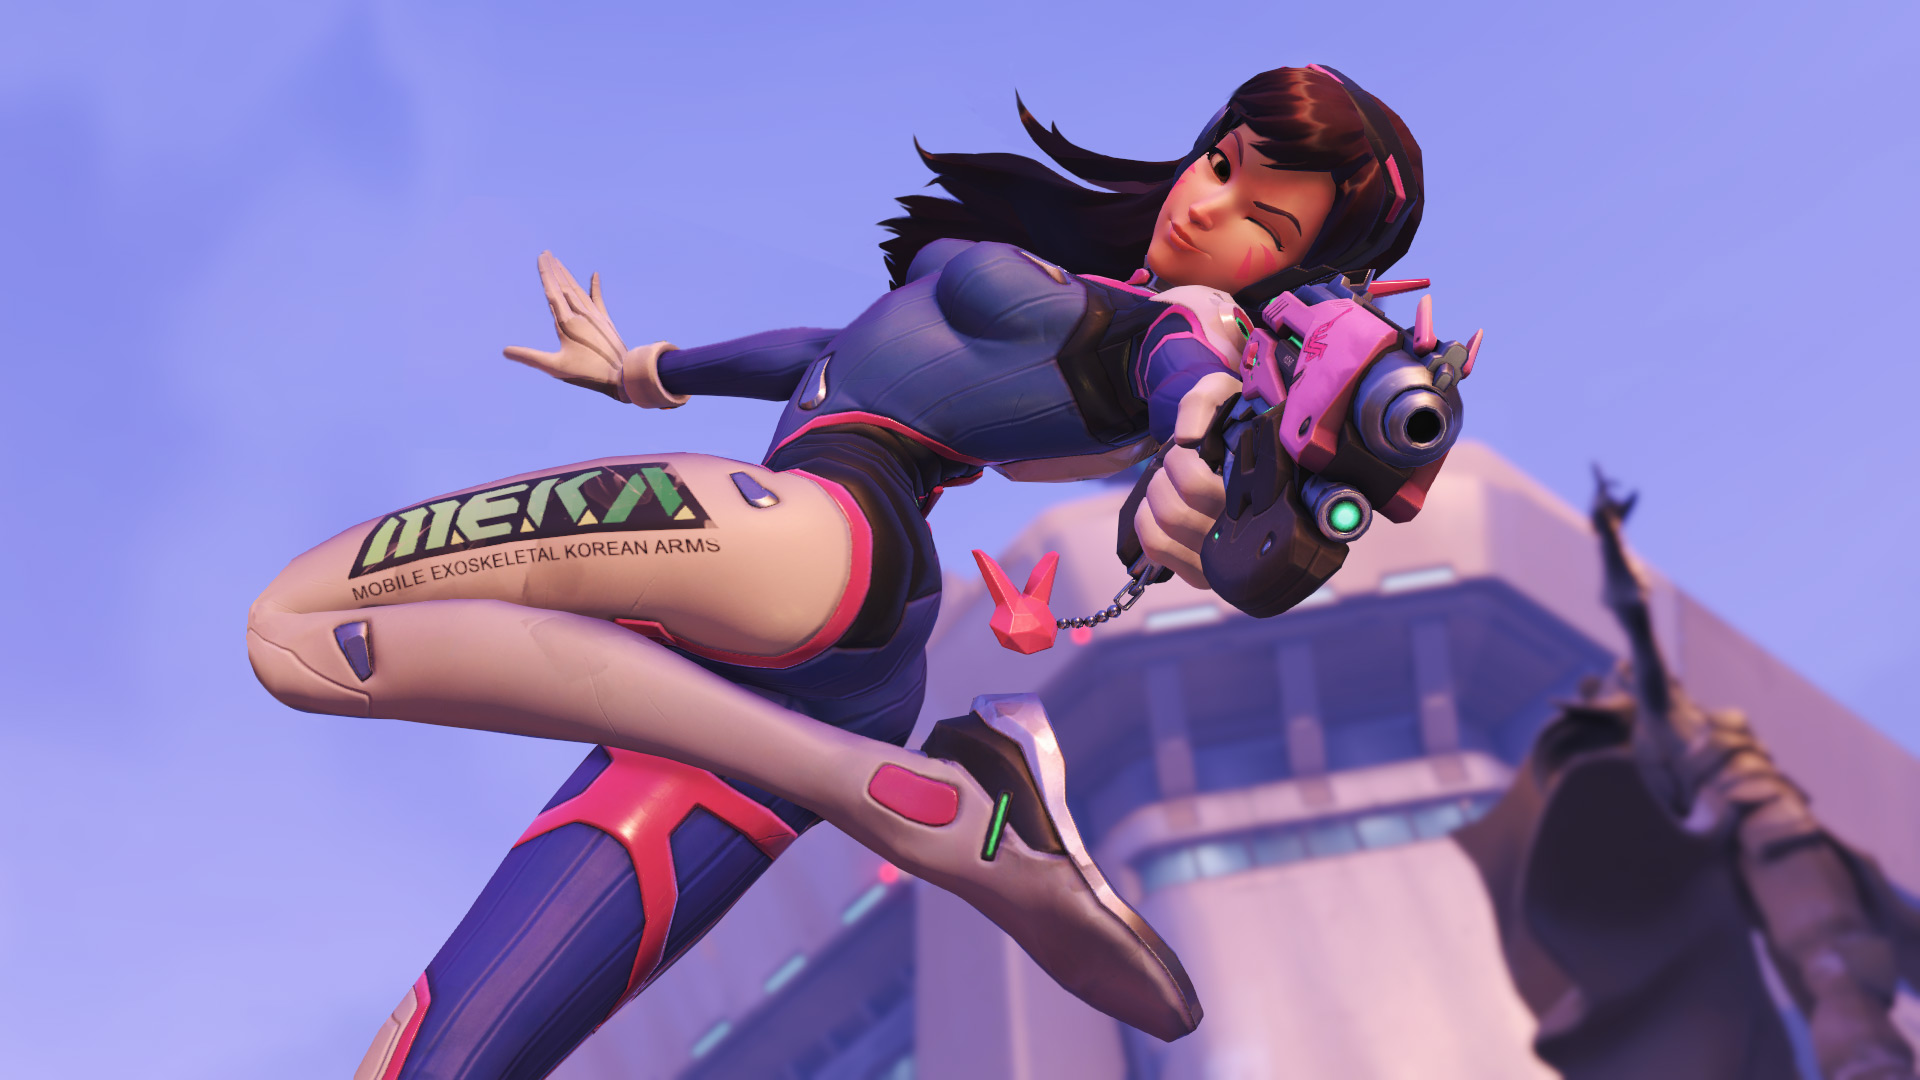 dva-screenshot-001.jpg